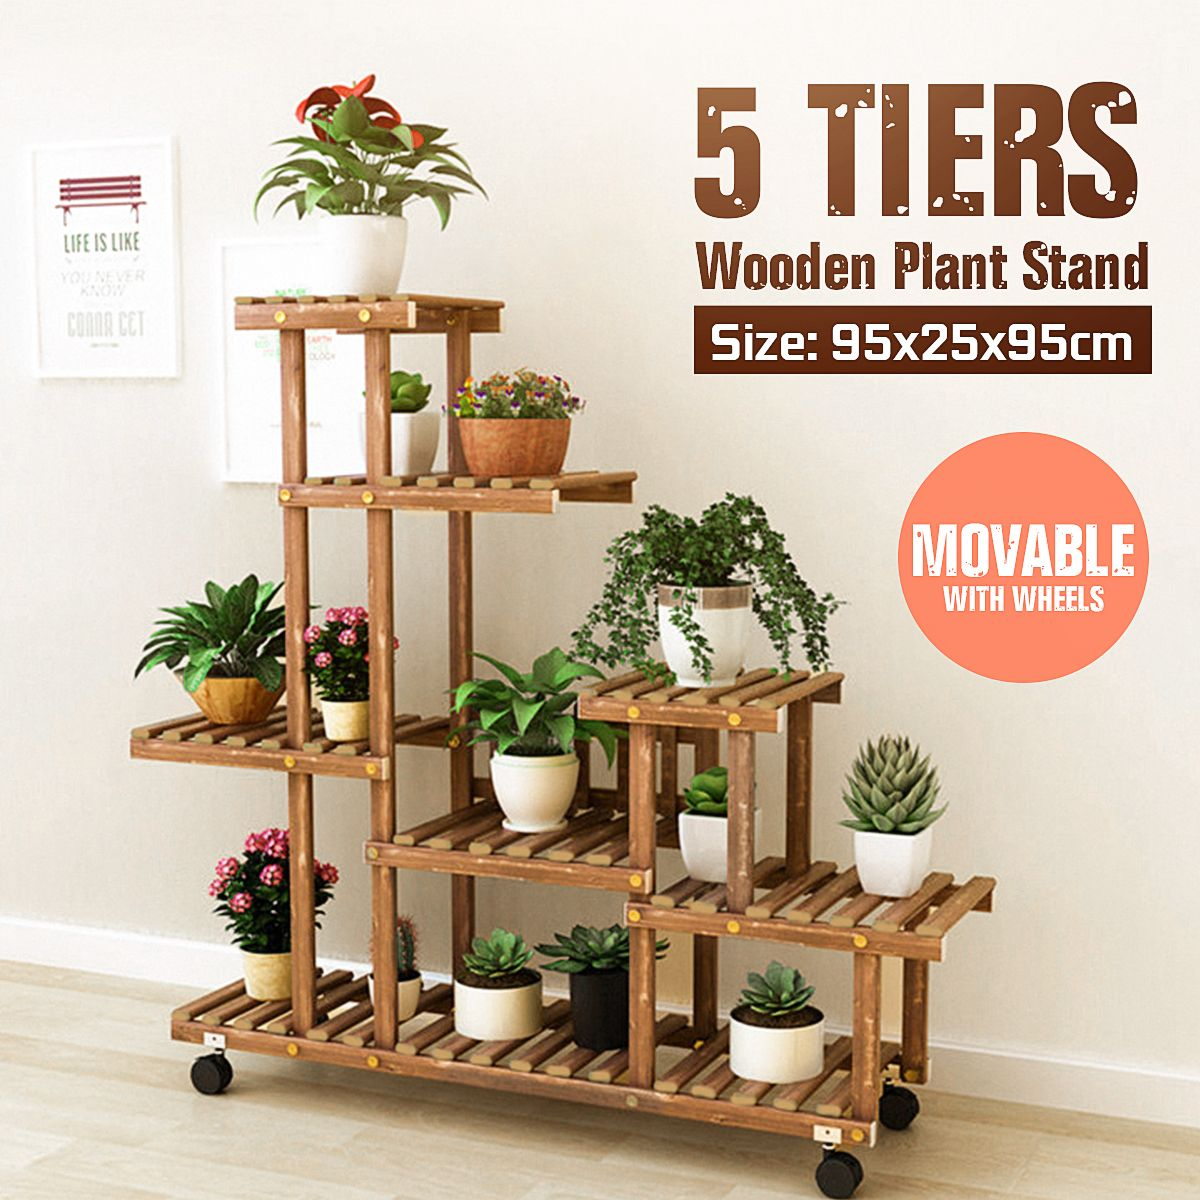 Wooden Flower Stands Rolling Flower Plant Display Shelf Storage